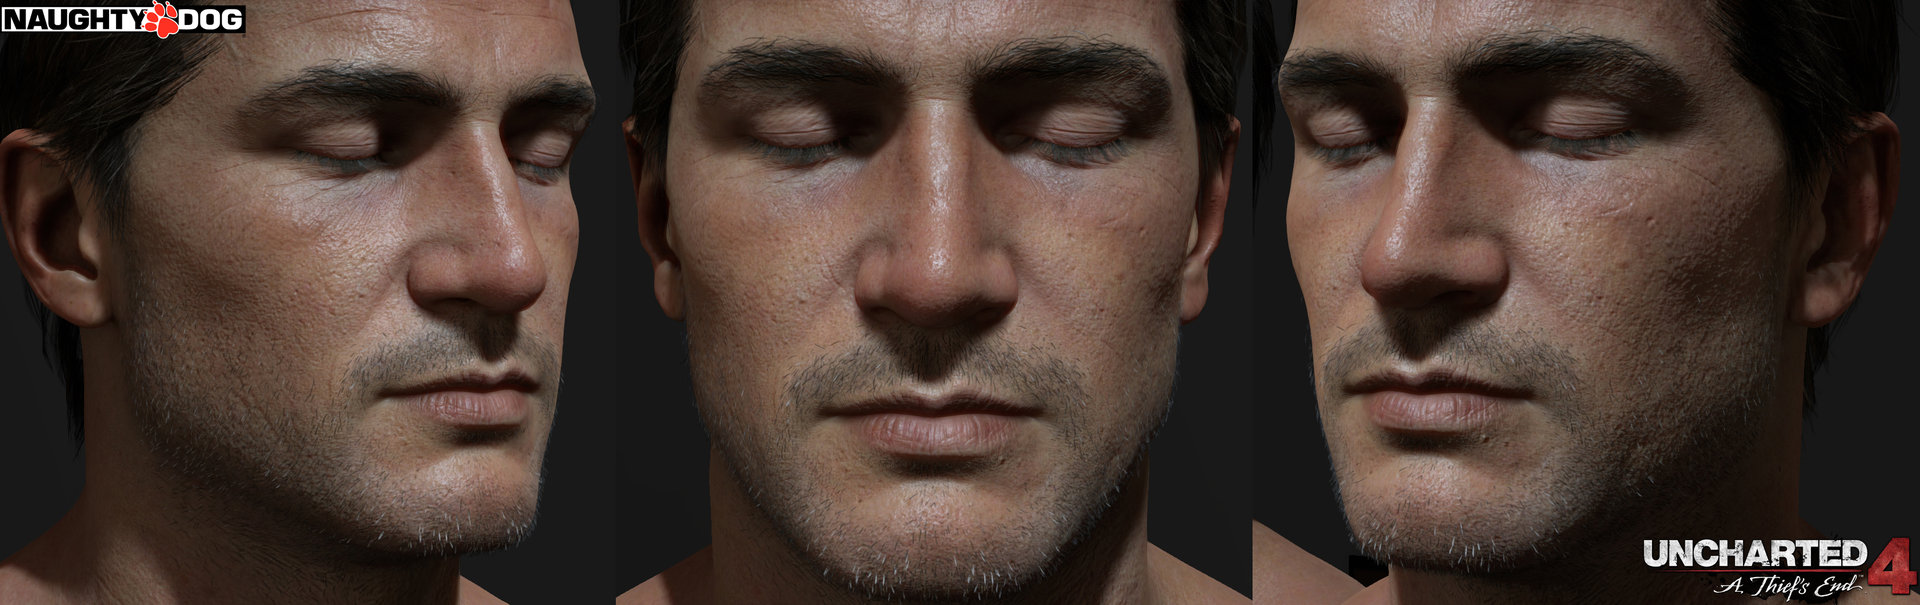 uncharted 4 nathan drake hairstyle